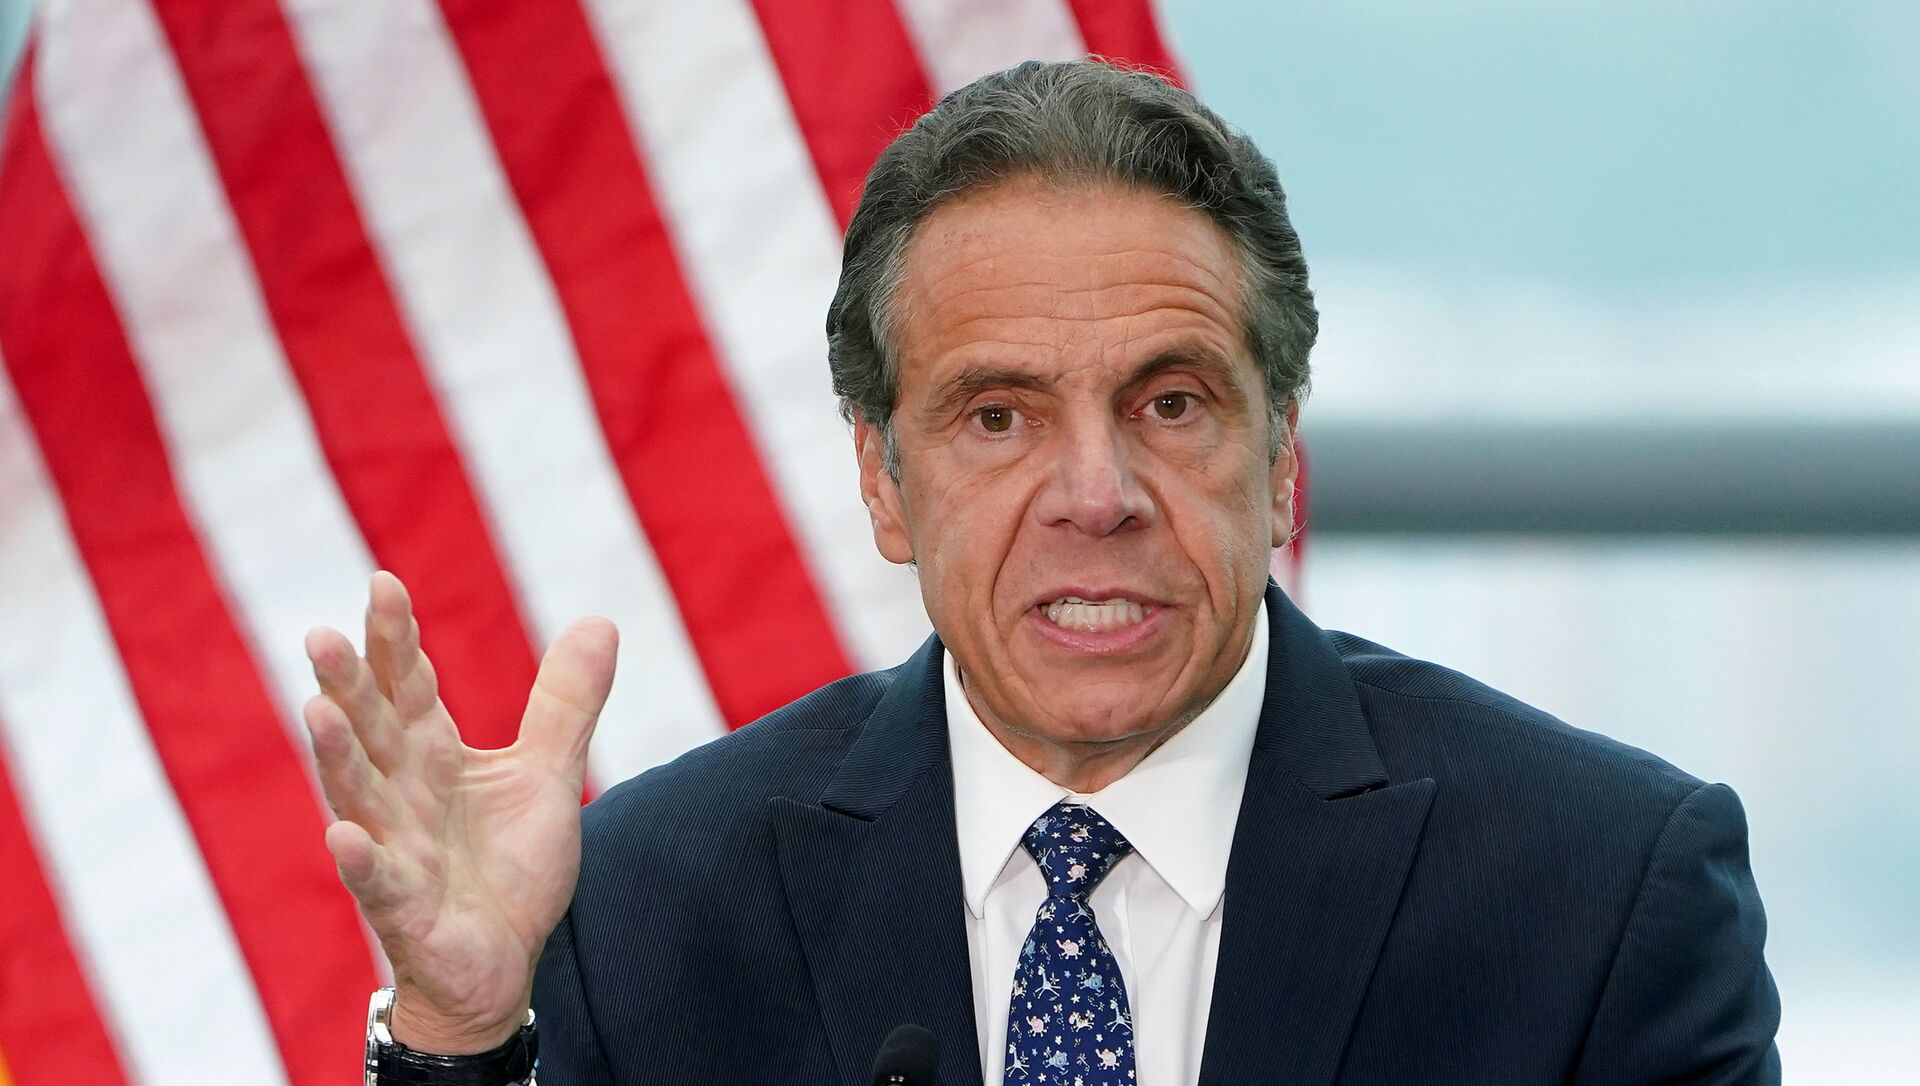 New York Governor Andrew Cuomo gives a press conference in the Manhattan borough of New York City, New York, U.S., June 2, 2021 - Sputnik International, 1920, 04.08.2021